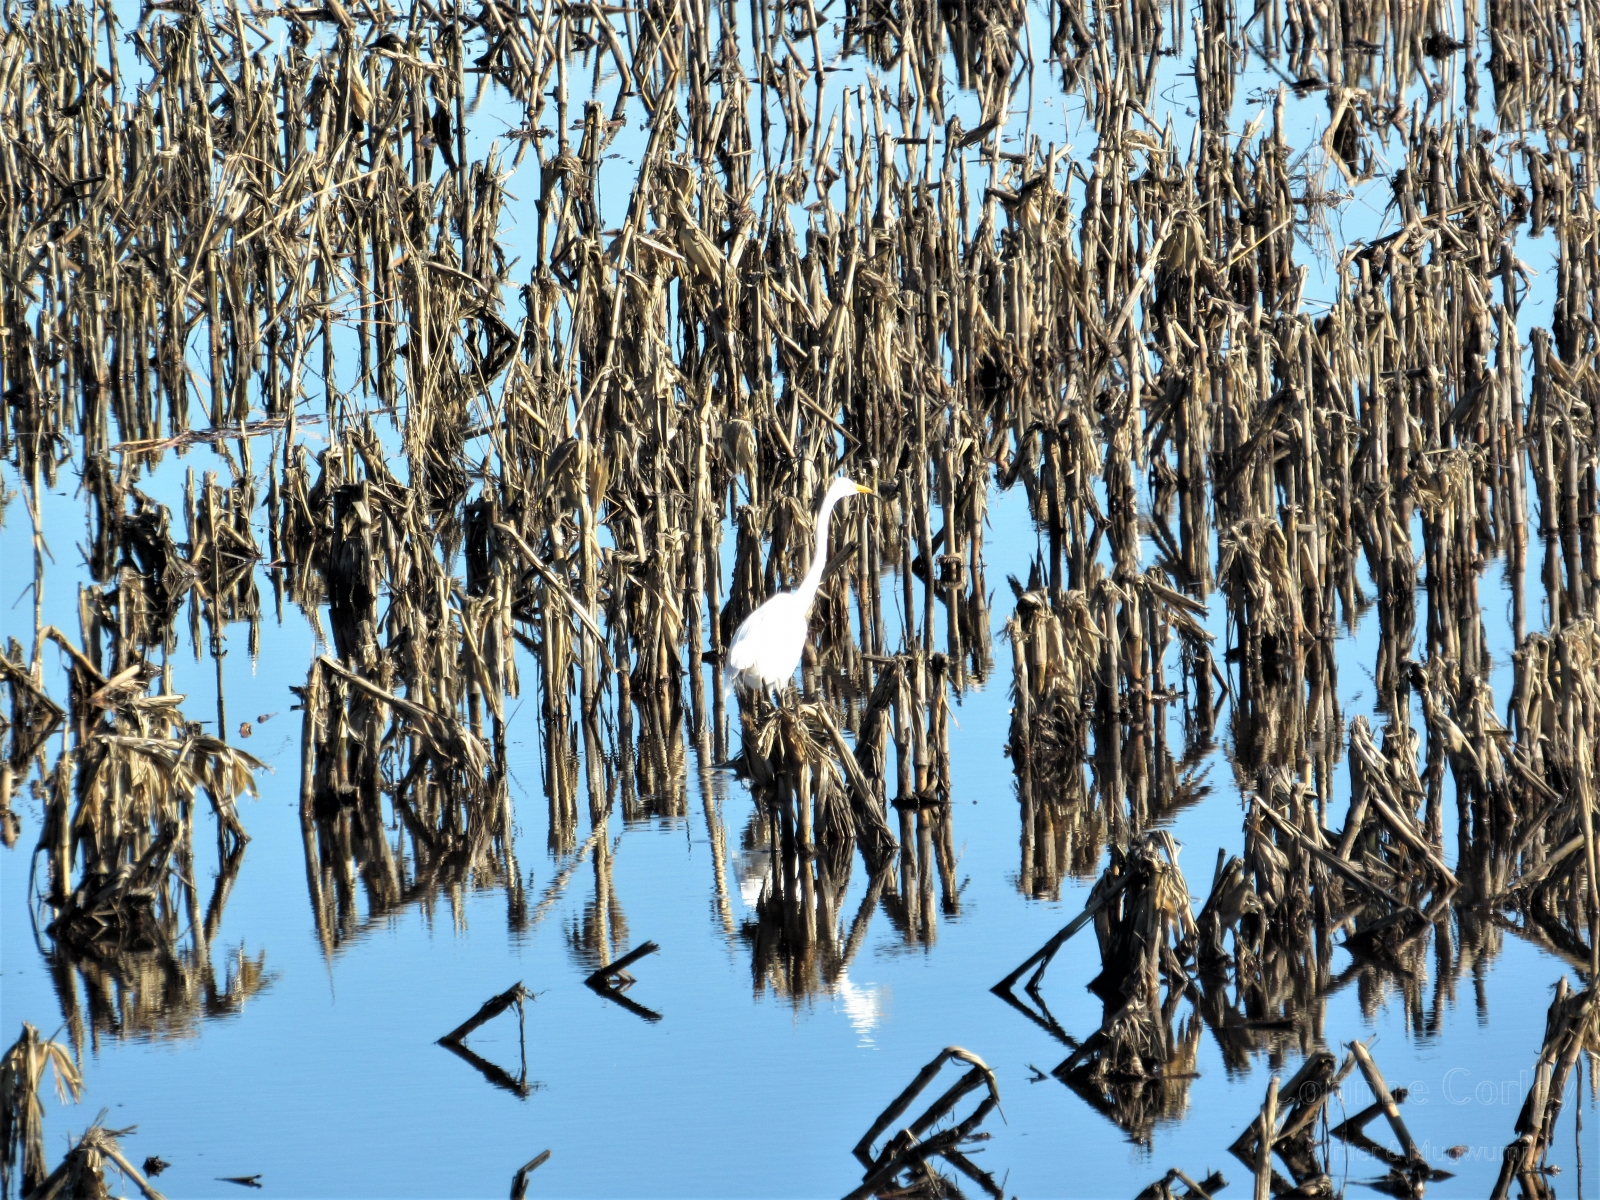 Egret-surrounded-by-reeds